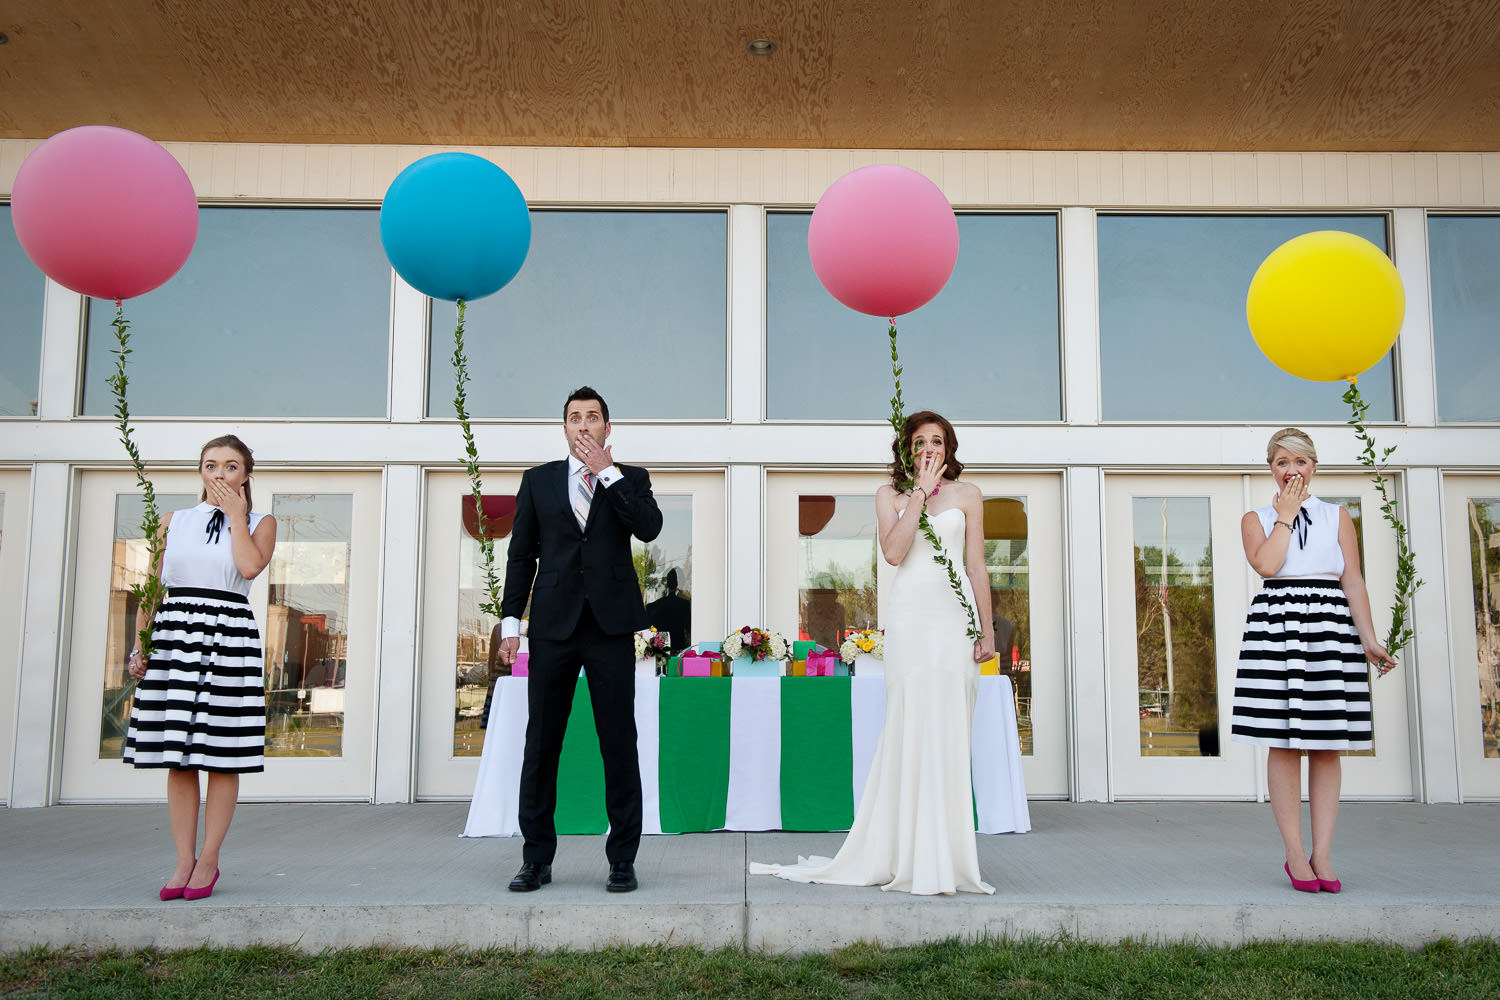 bridal party at Inglewood Lawn Bowling Club captured by Tara Whittaker Photography